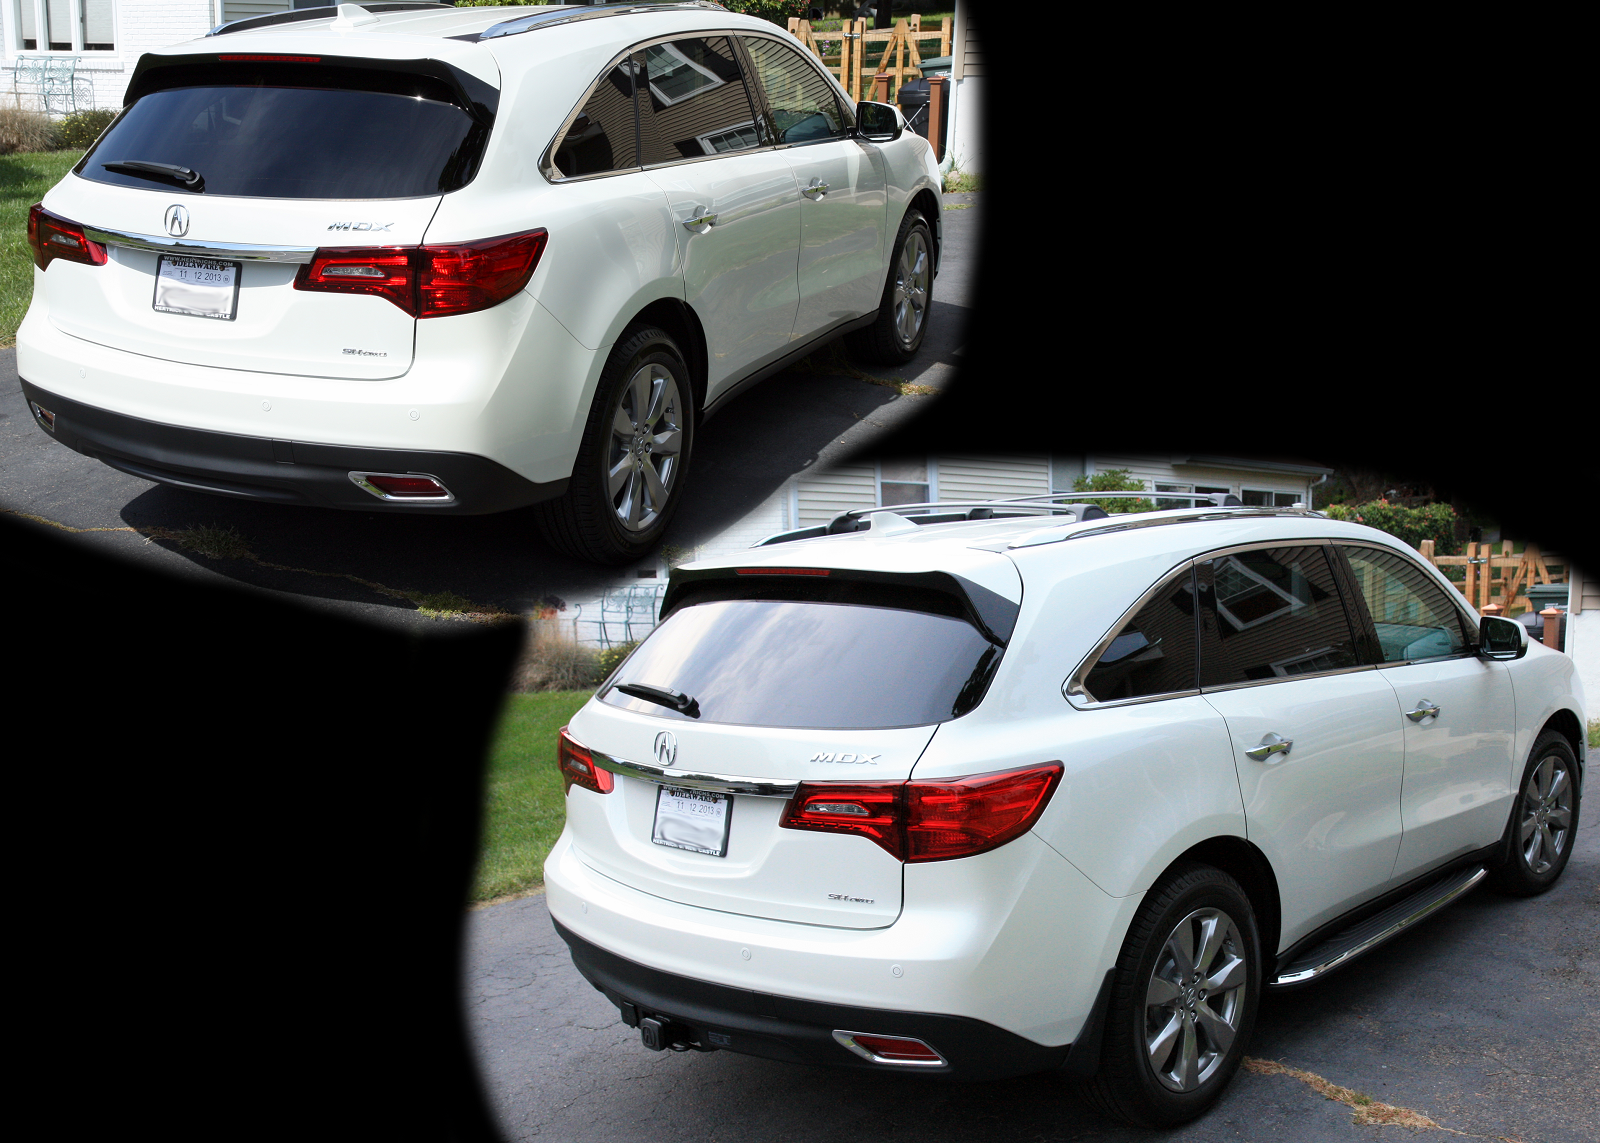 Accessory Install Before And After Pics Acura MDX Forum Acura - Acura mdx accessories